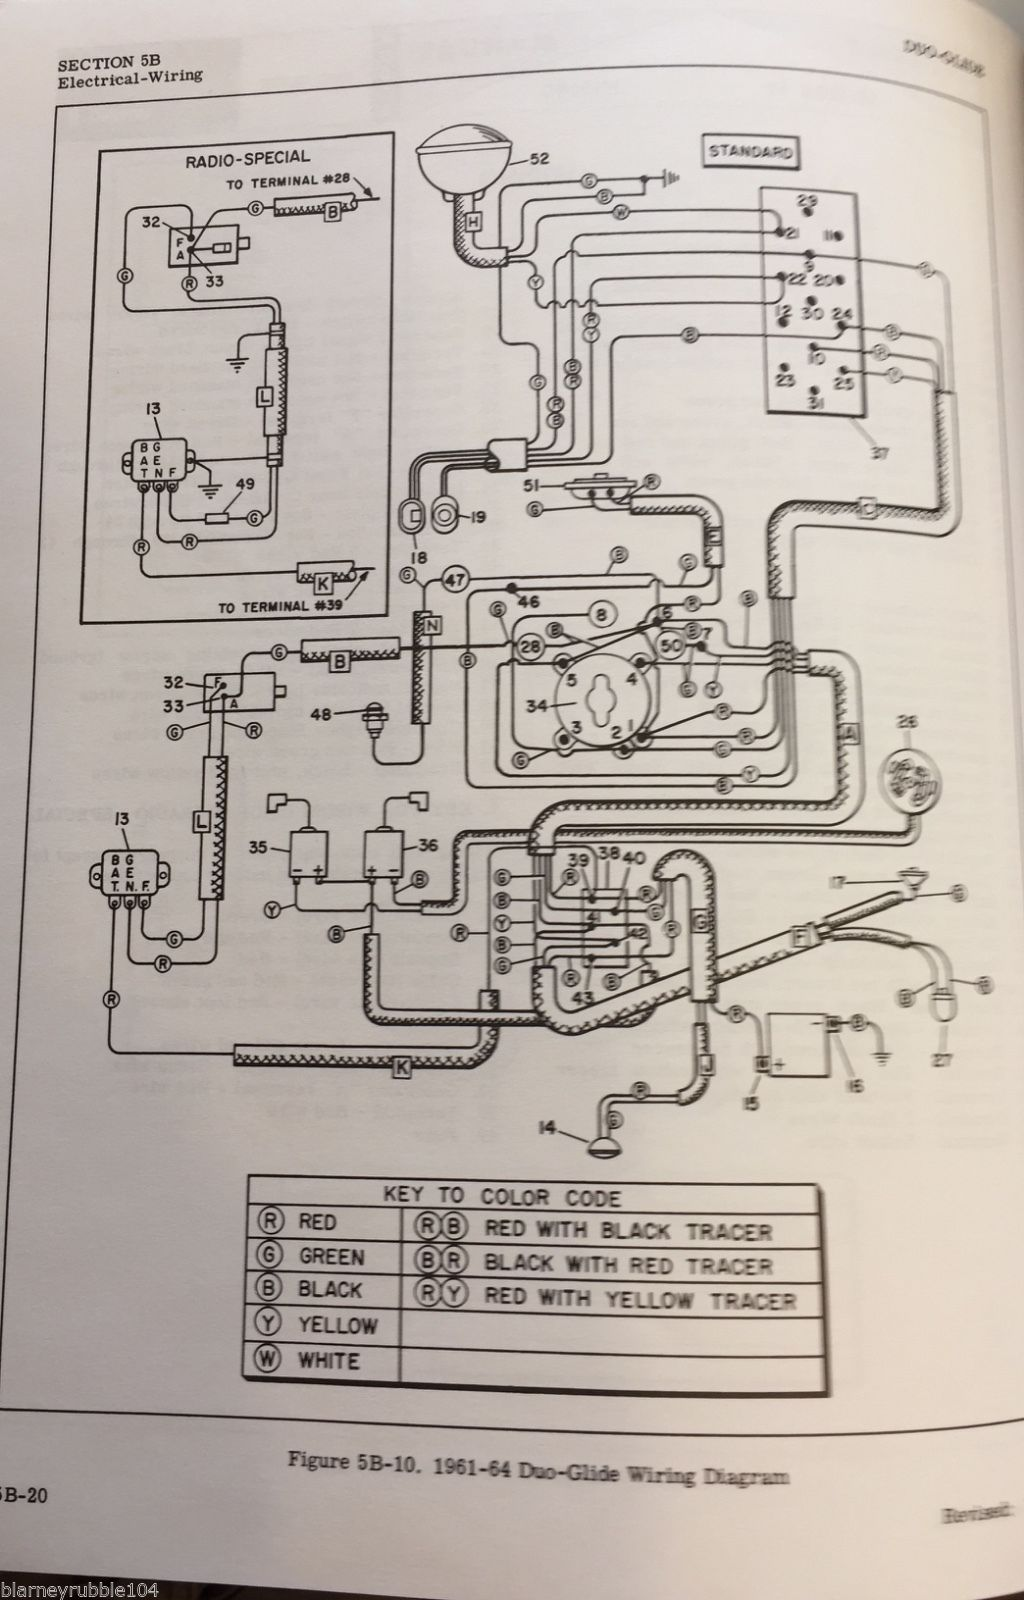 1999 softail wiring diagram db26a1 1999 harley softail wiring diagram wiring resources  harley softail wiring diagram wiring